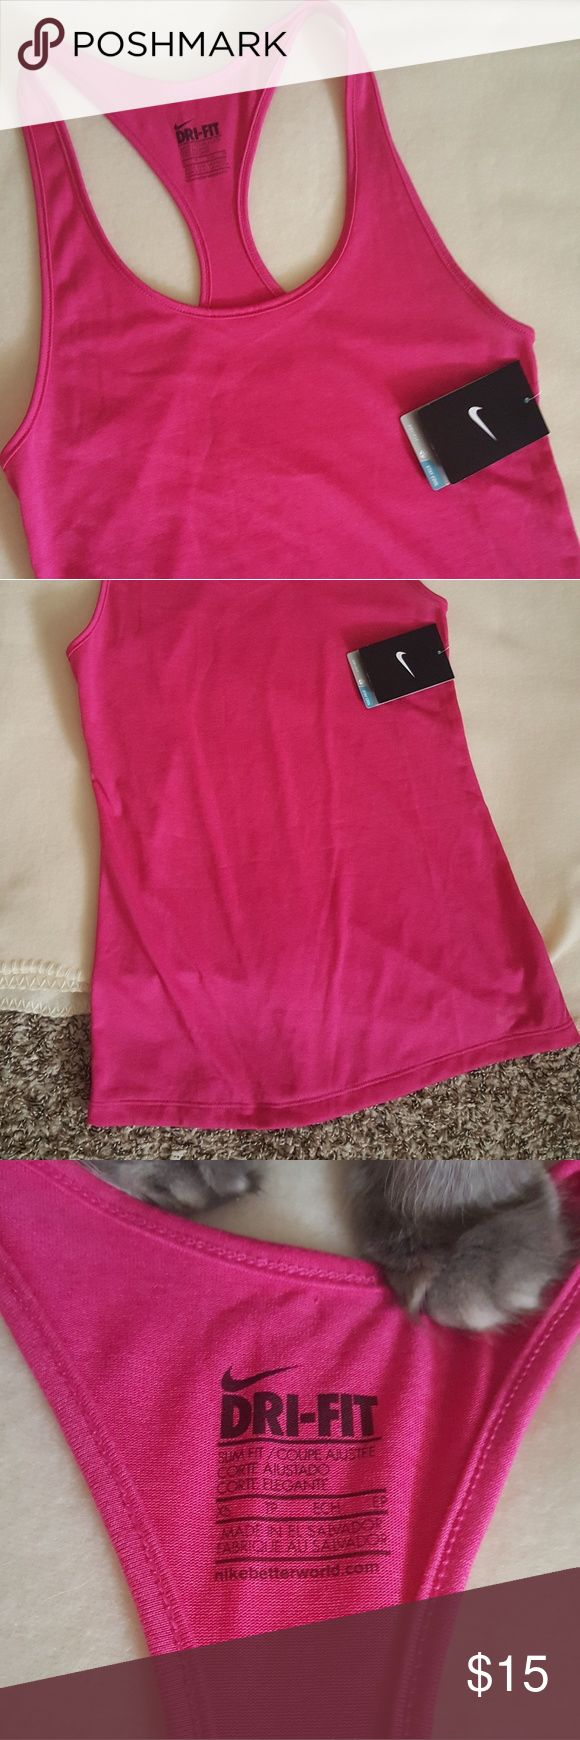 NWT Nike tank top NWT Nike dri-fit racer back tank top. Hot pink. Slim fit. Purchased the wrong size and didn't realize it was a slim fit. Yes, that is my cat's paw. He didnt actually get on the shirt.   Smoke free home  Reasonable offers considered and usually accepted No trades  Bundle and save! Nike Tops Tank Tops